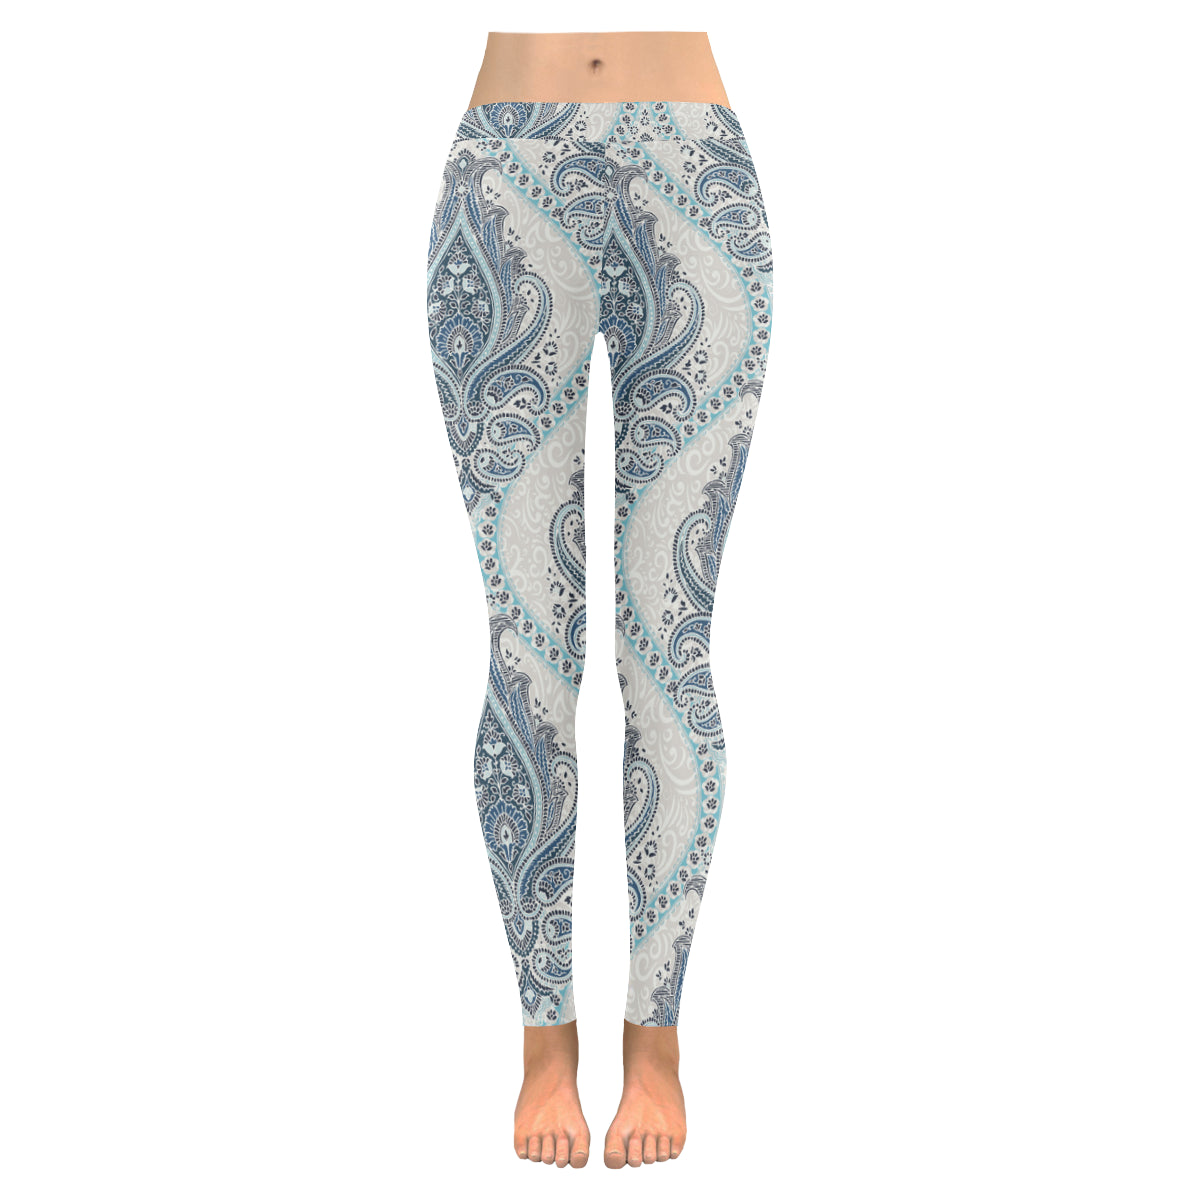 MARIAH Low Rise Leggings (Model L05)